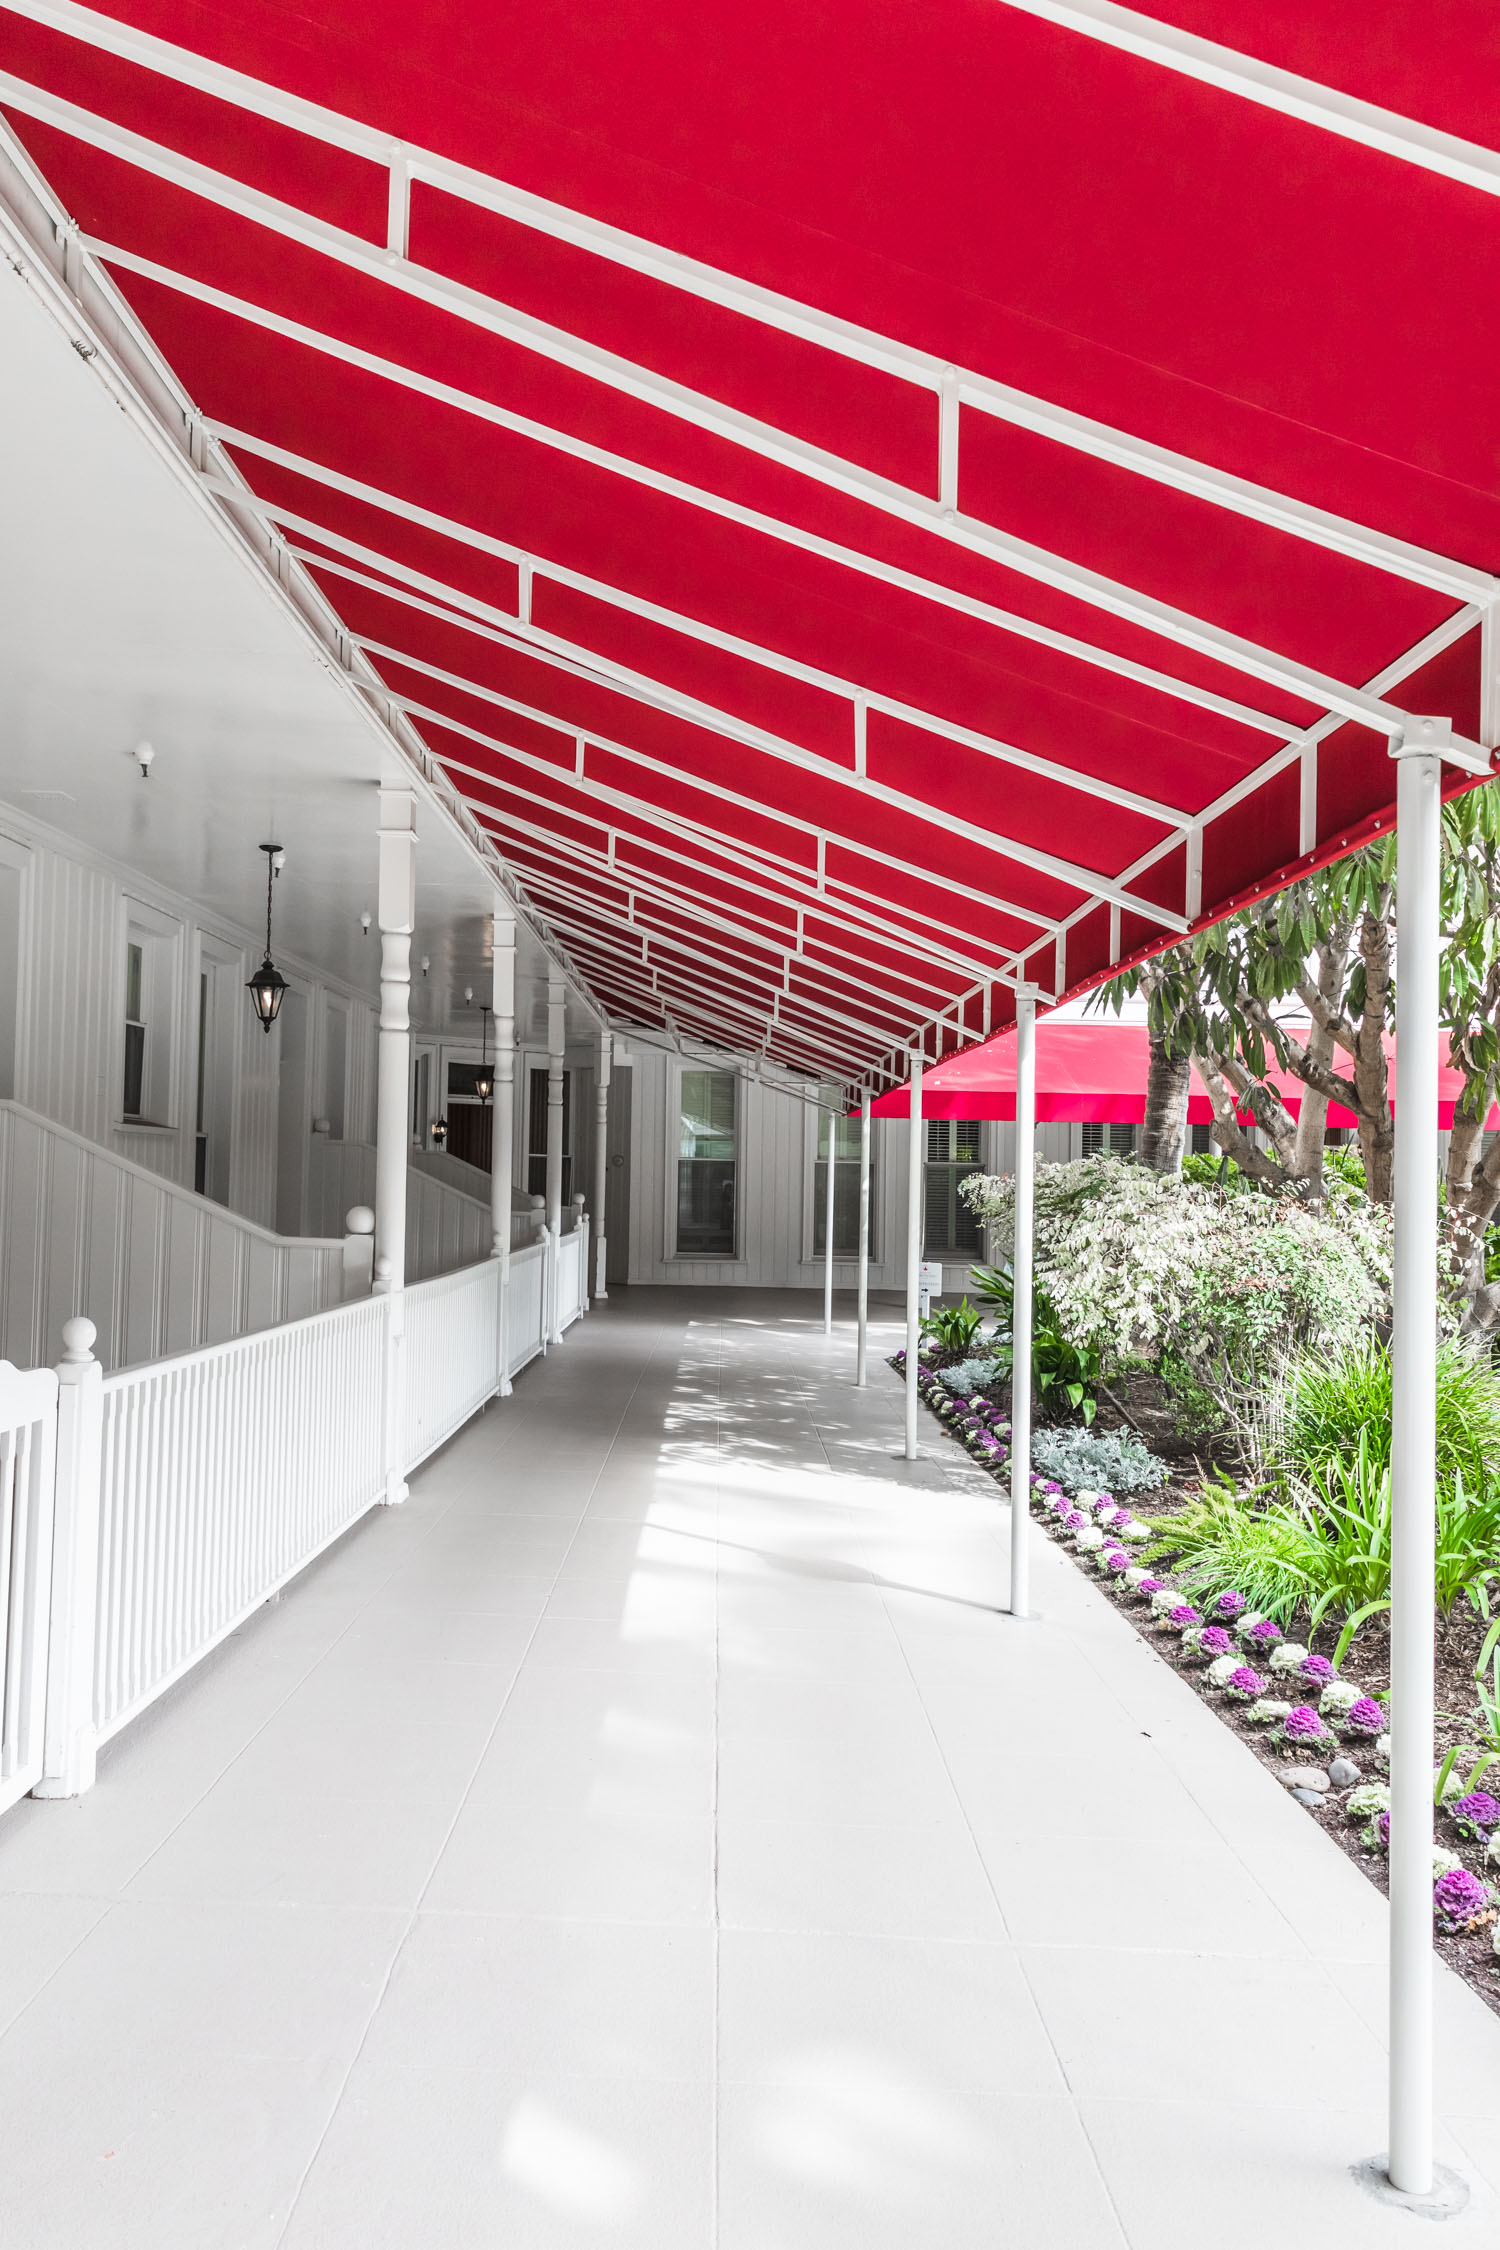 Vertical shot of a white outdoor hallway with a red overhang.